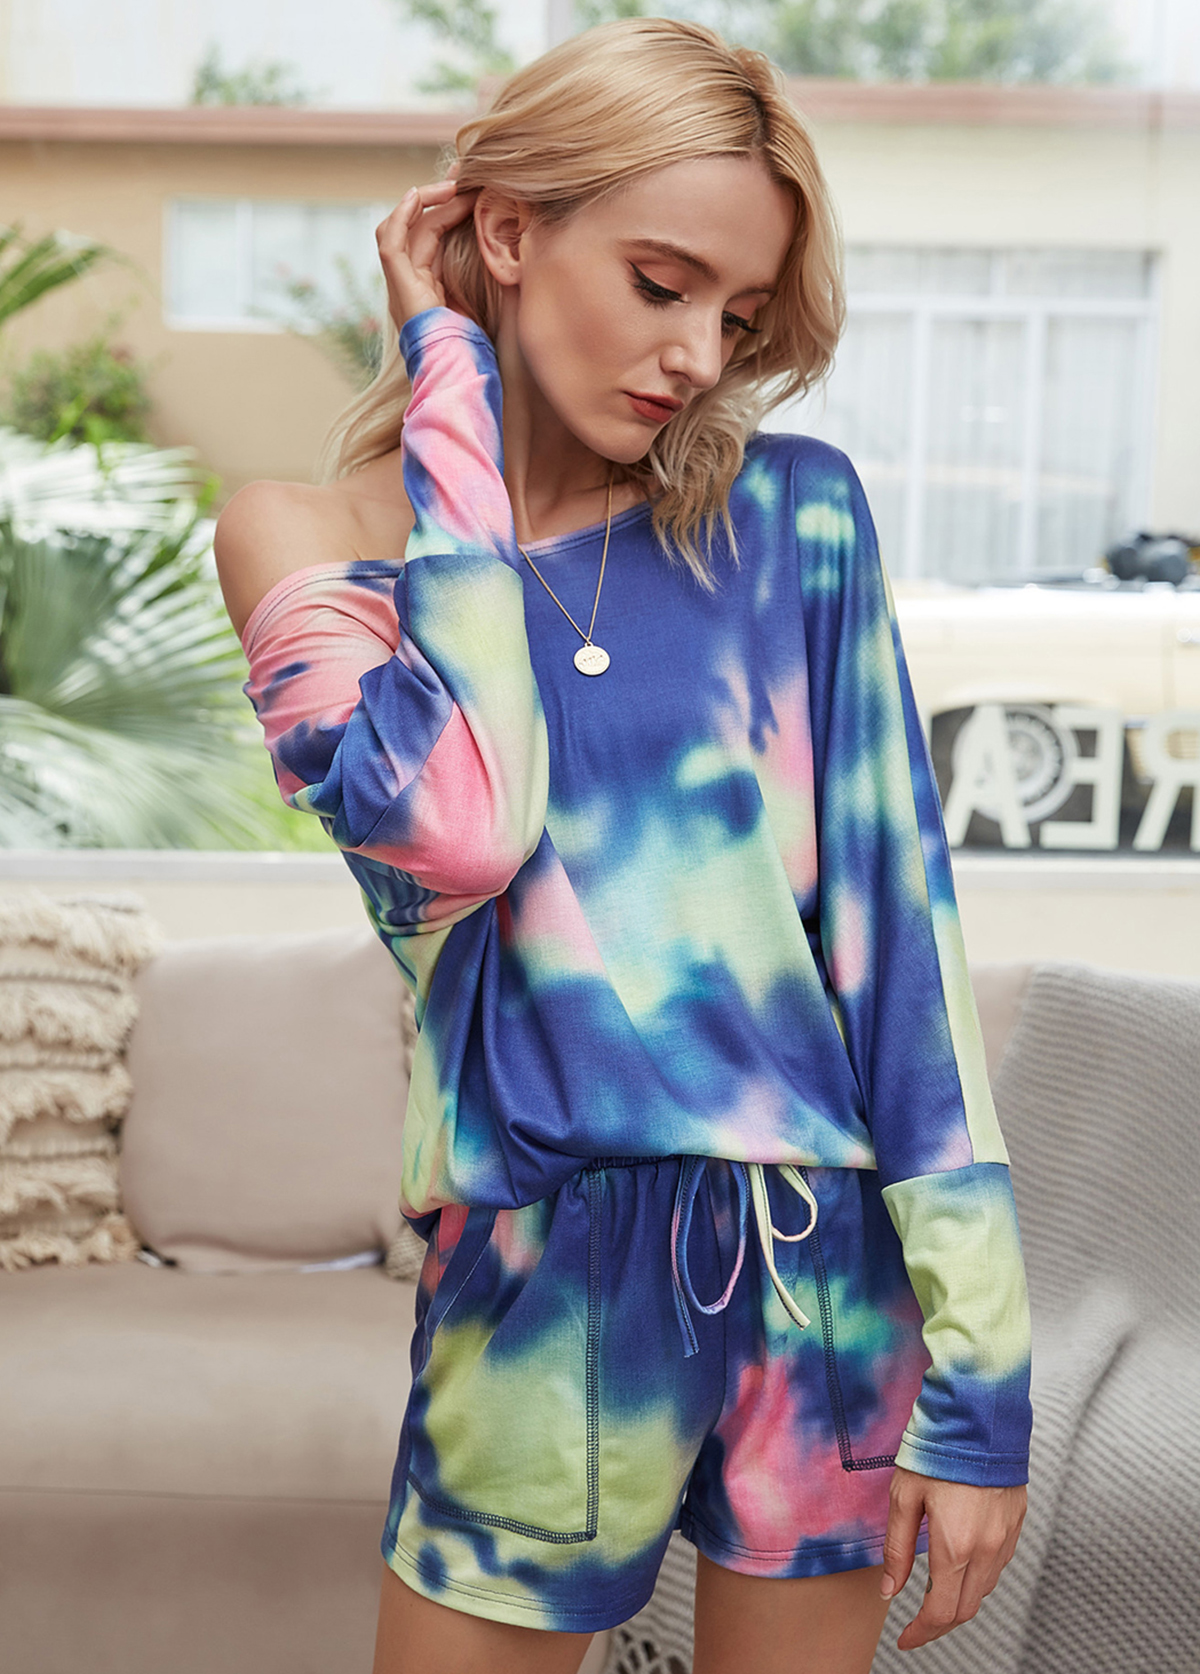 Long Sleeve Round Neck Tie Dye Print Top and Shorts